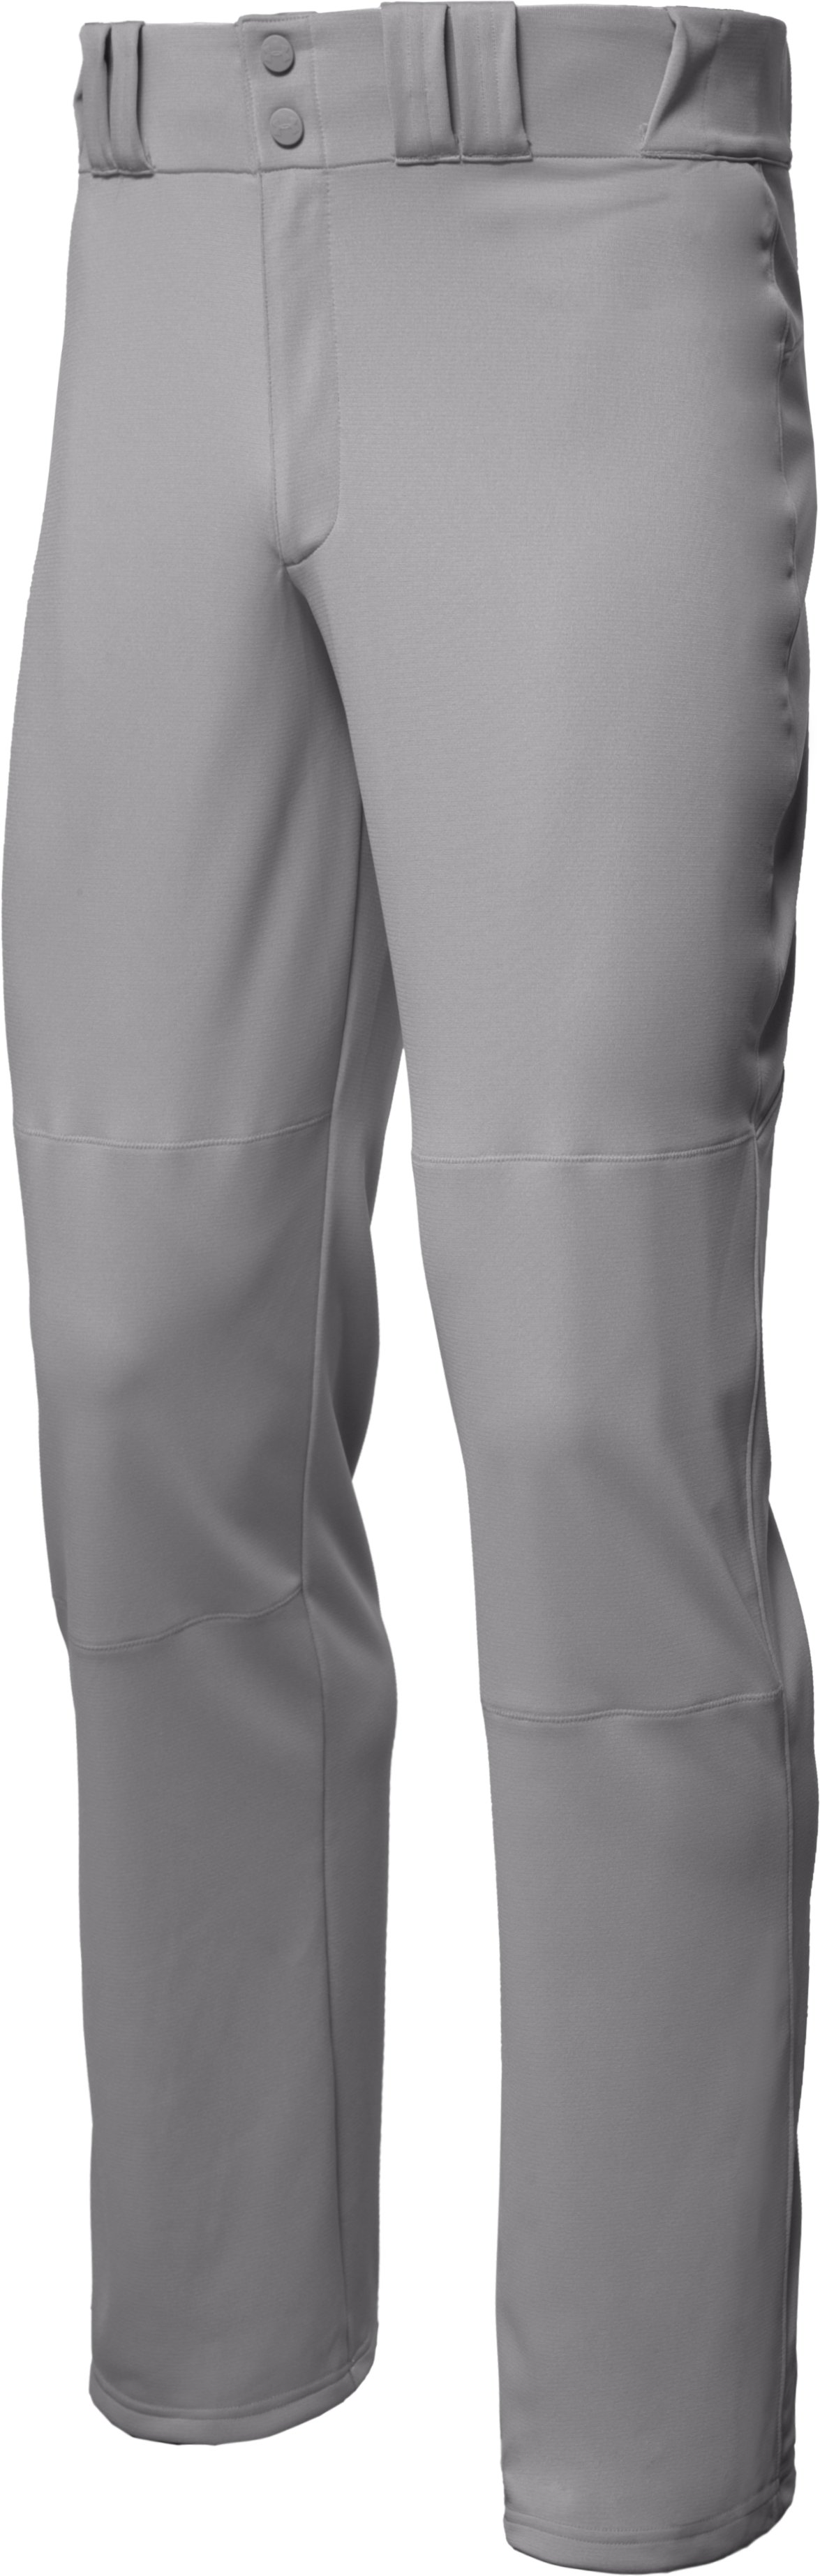 Men's Huntington Pant, Baseball Gray